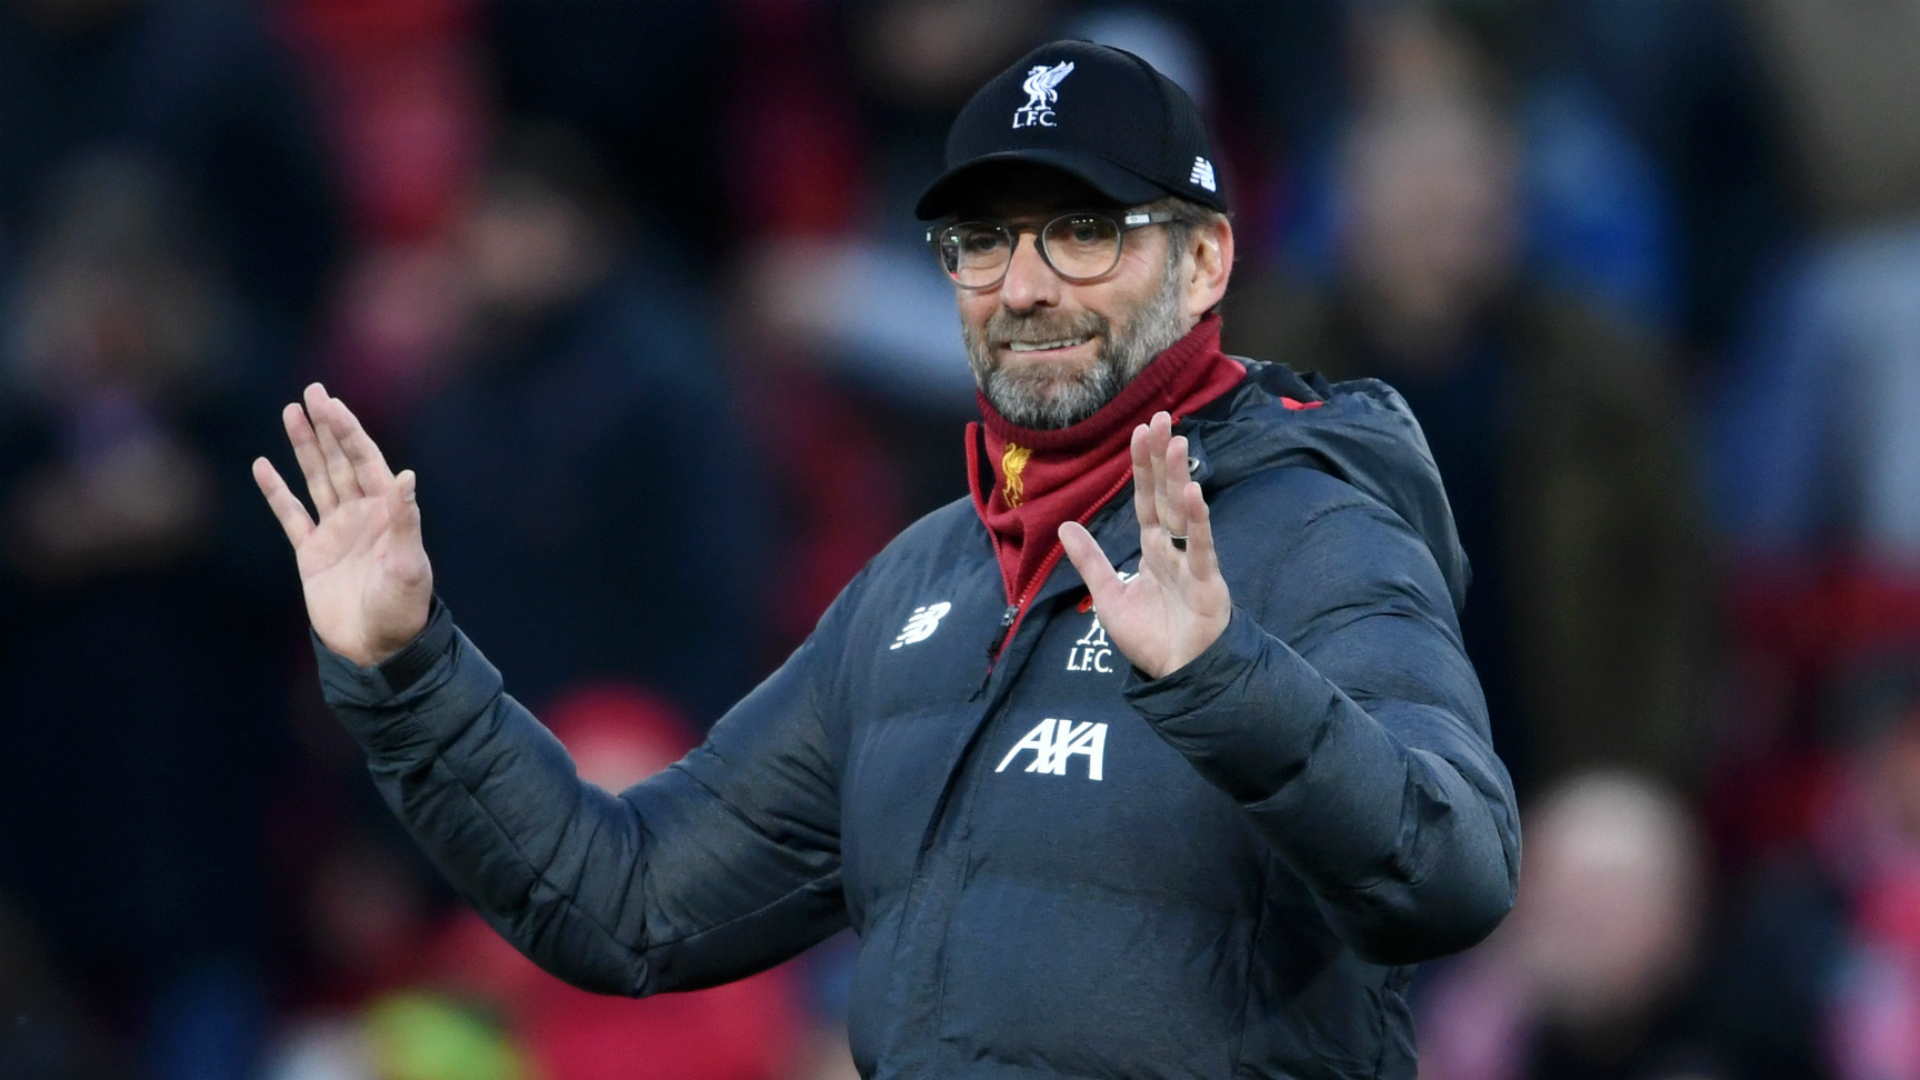 Liverpool face Everton in FA Cup third round, holders Manchester City host Port Vale